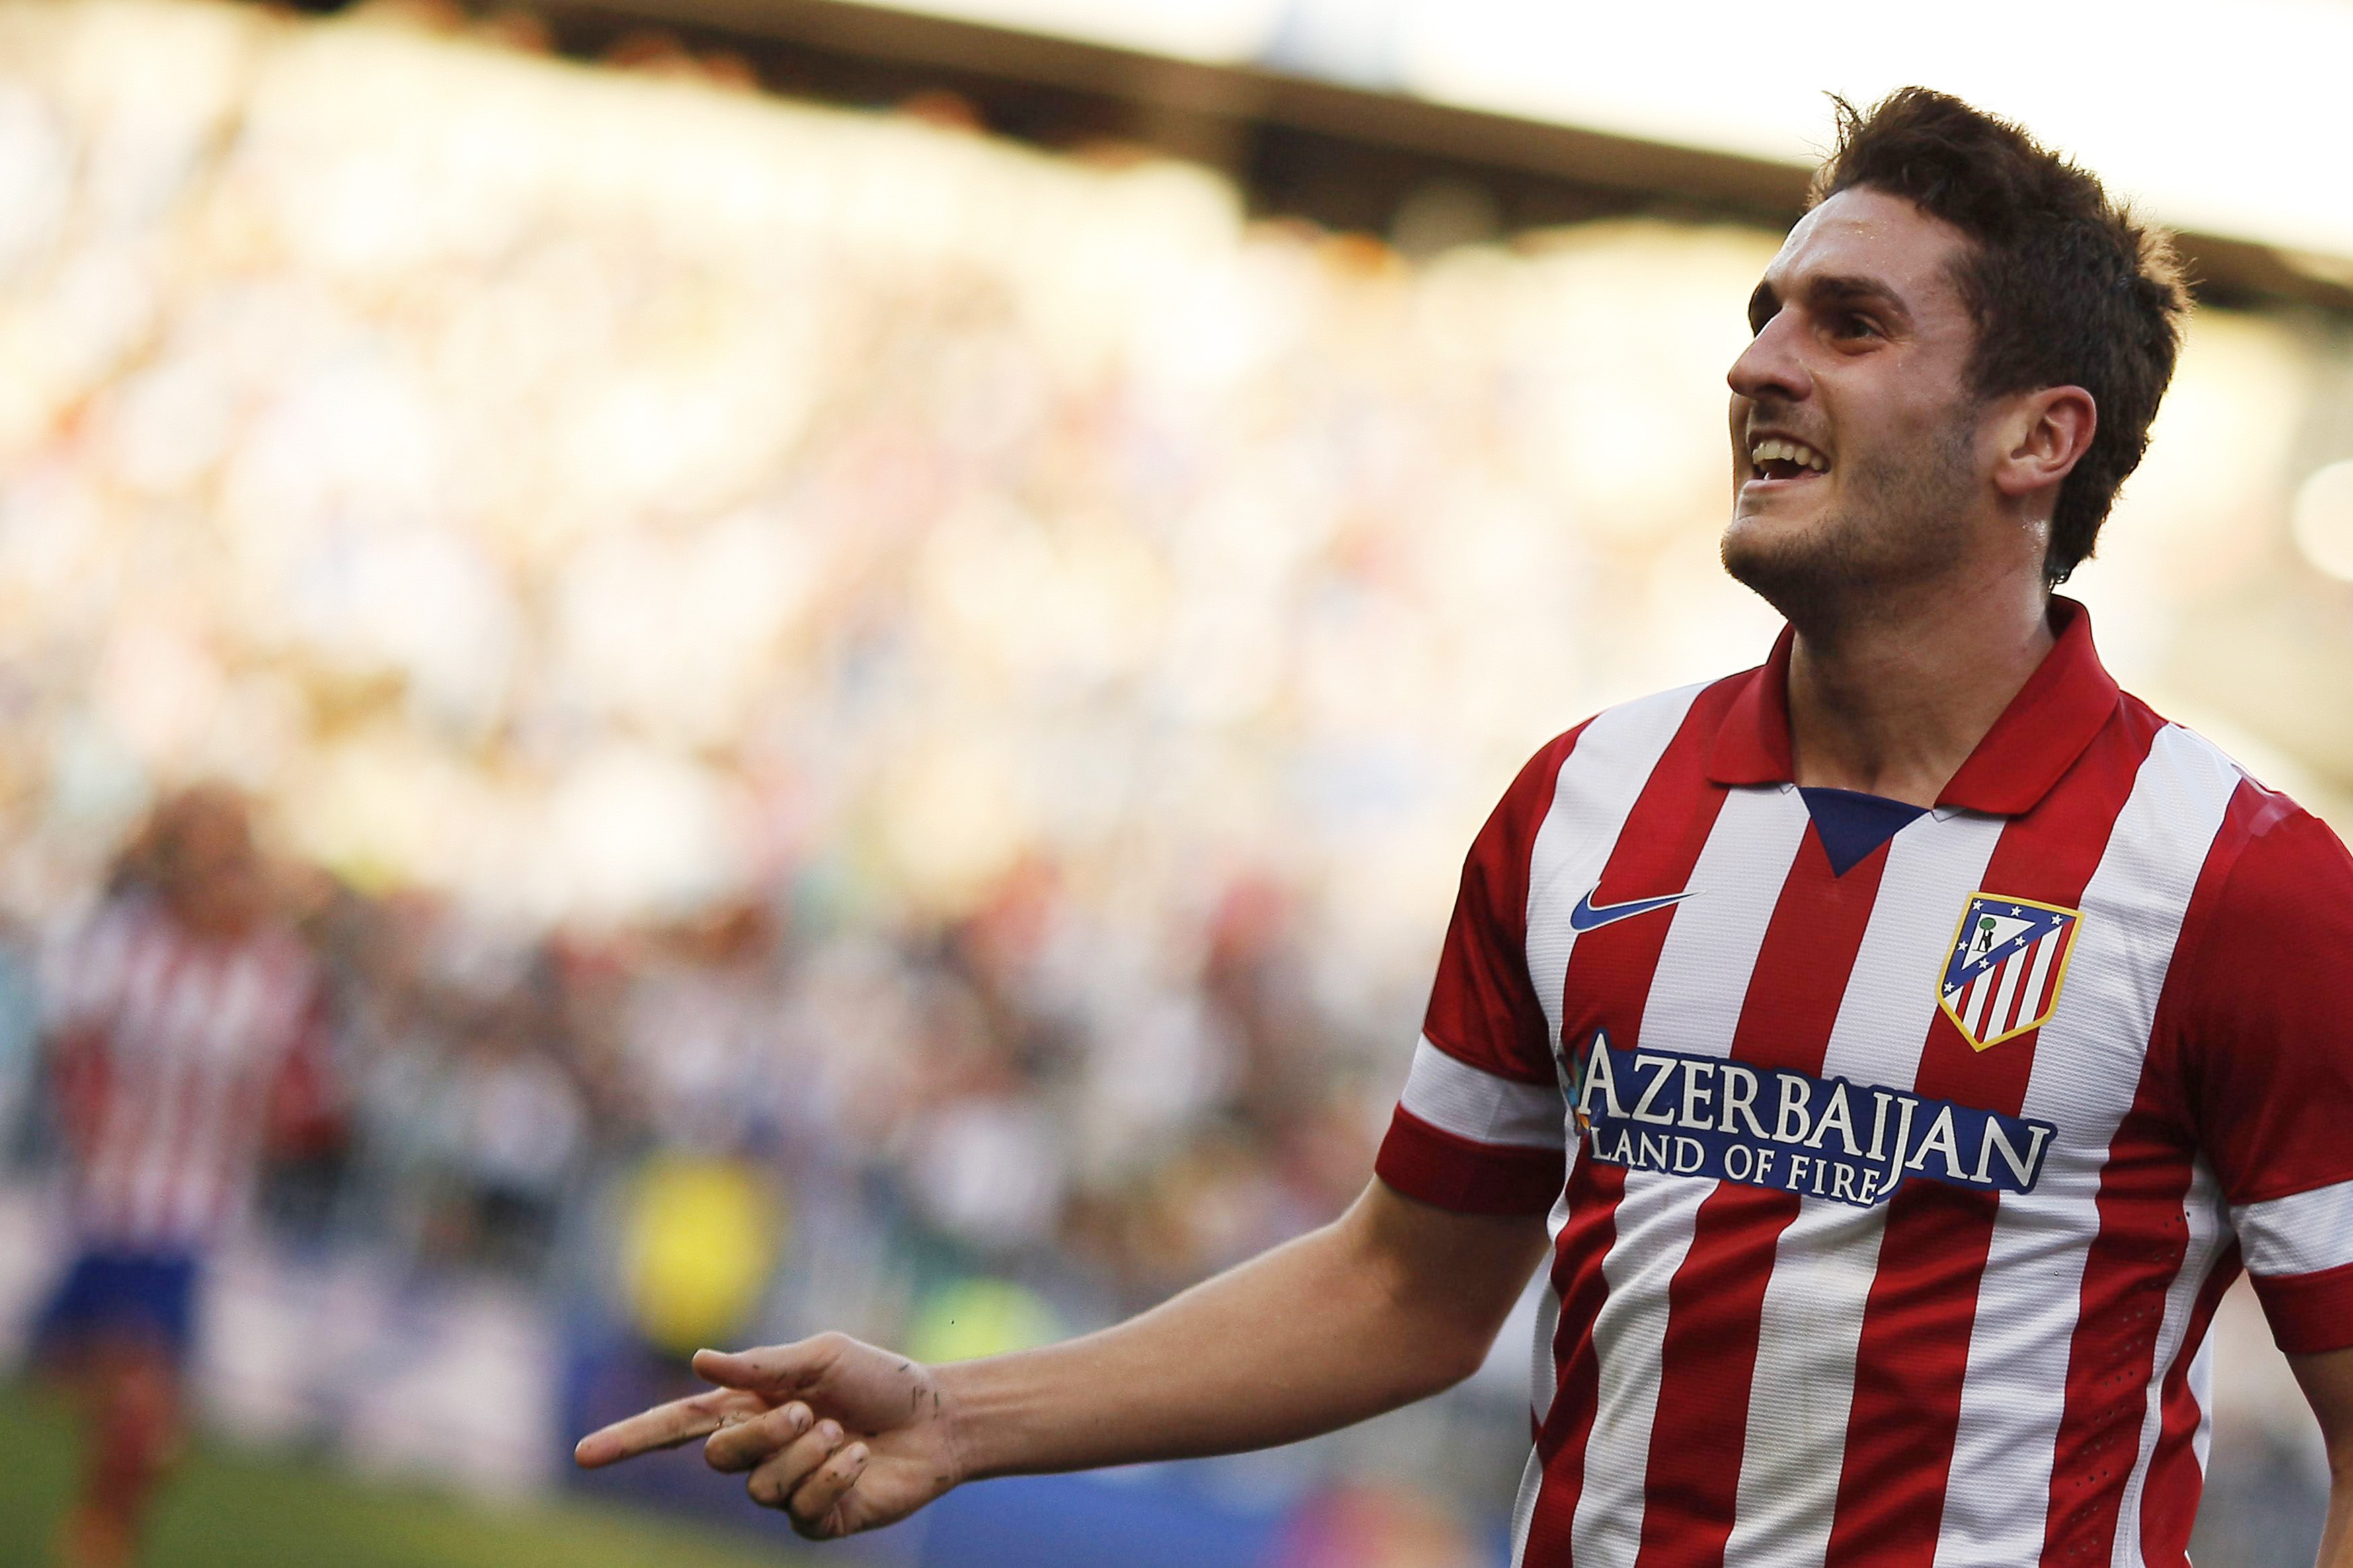 Atletico Madrid's Koke celebrates after scoring a goal against Malaga during their Spanish First Division soccer match in Malaga